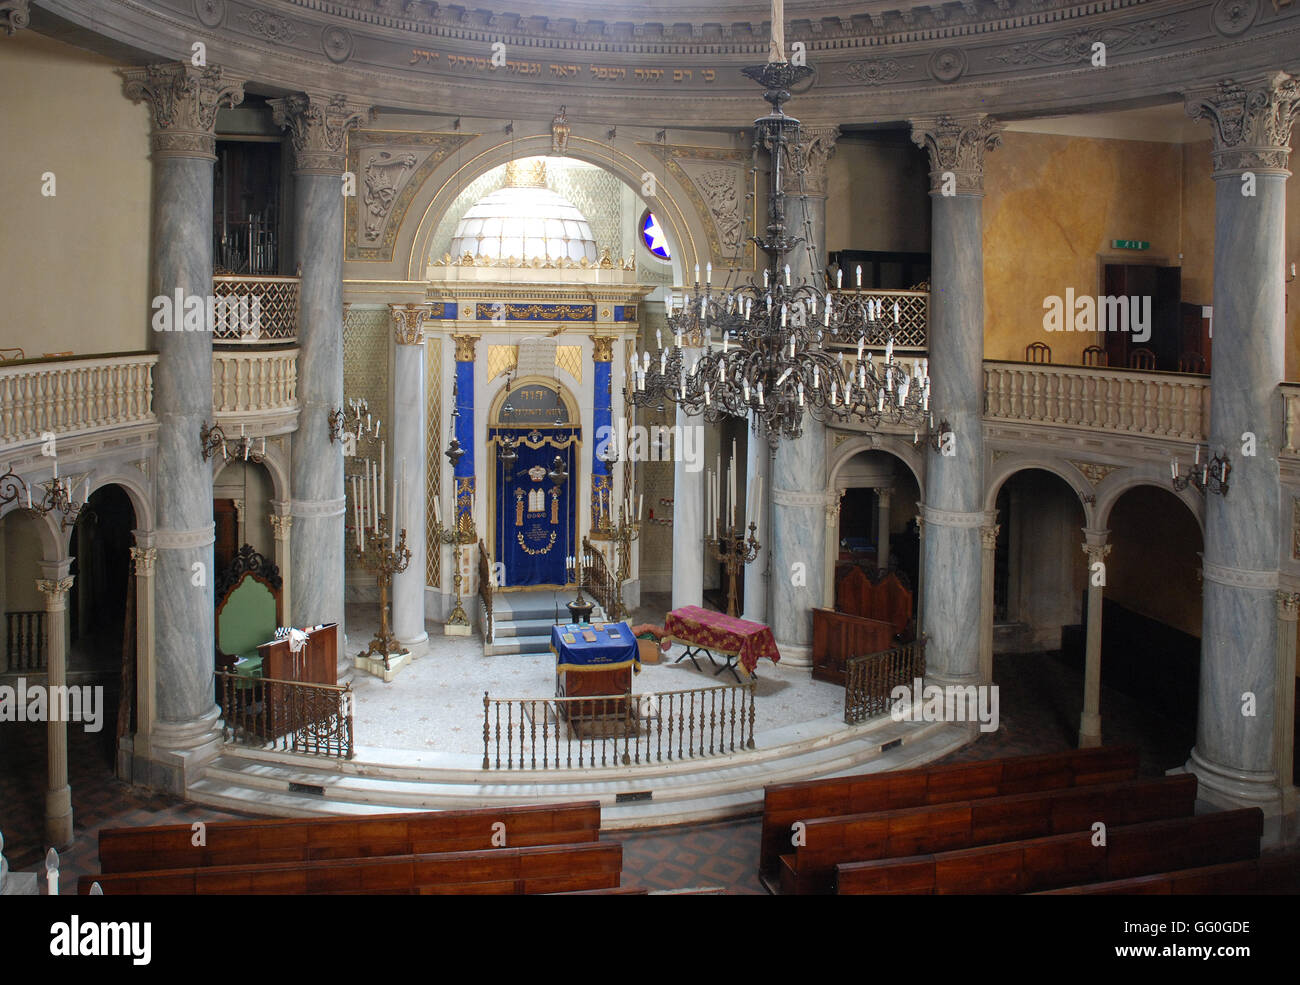 5620. Modena synagogue, interrior - Stock Image